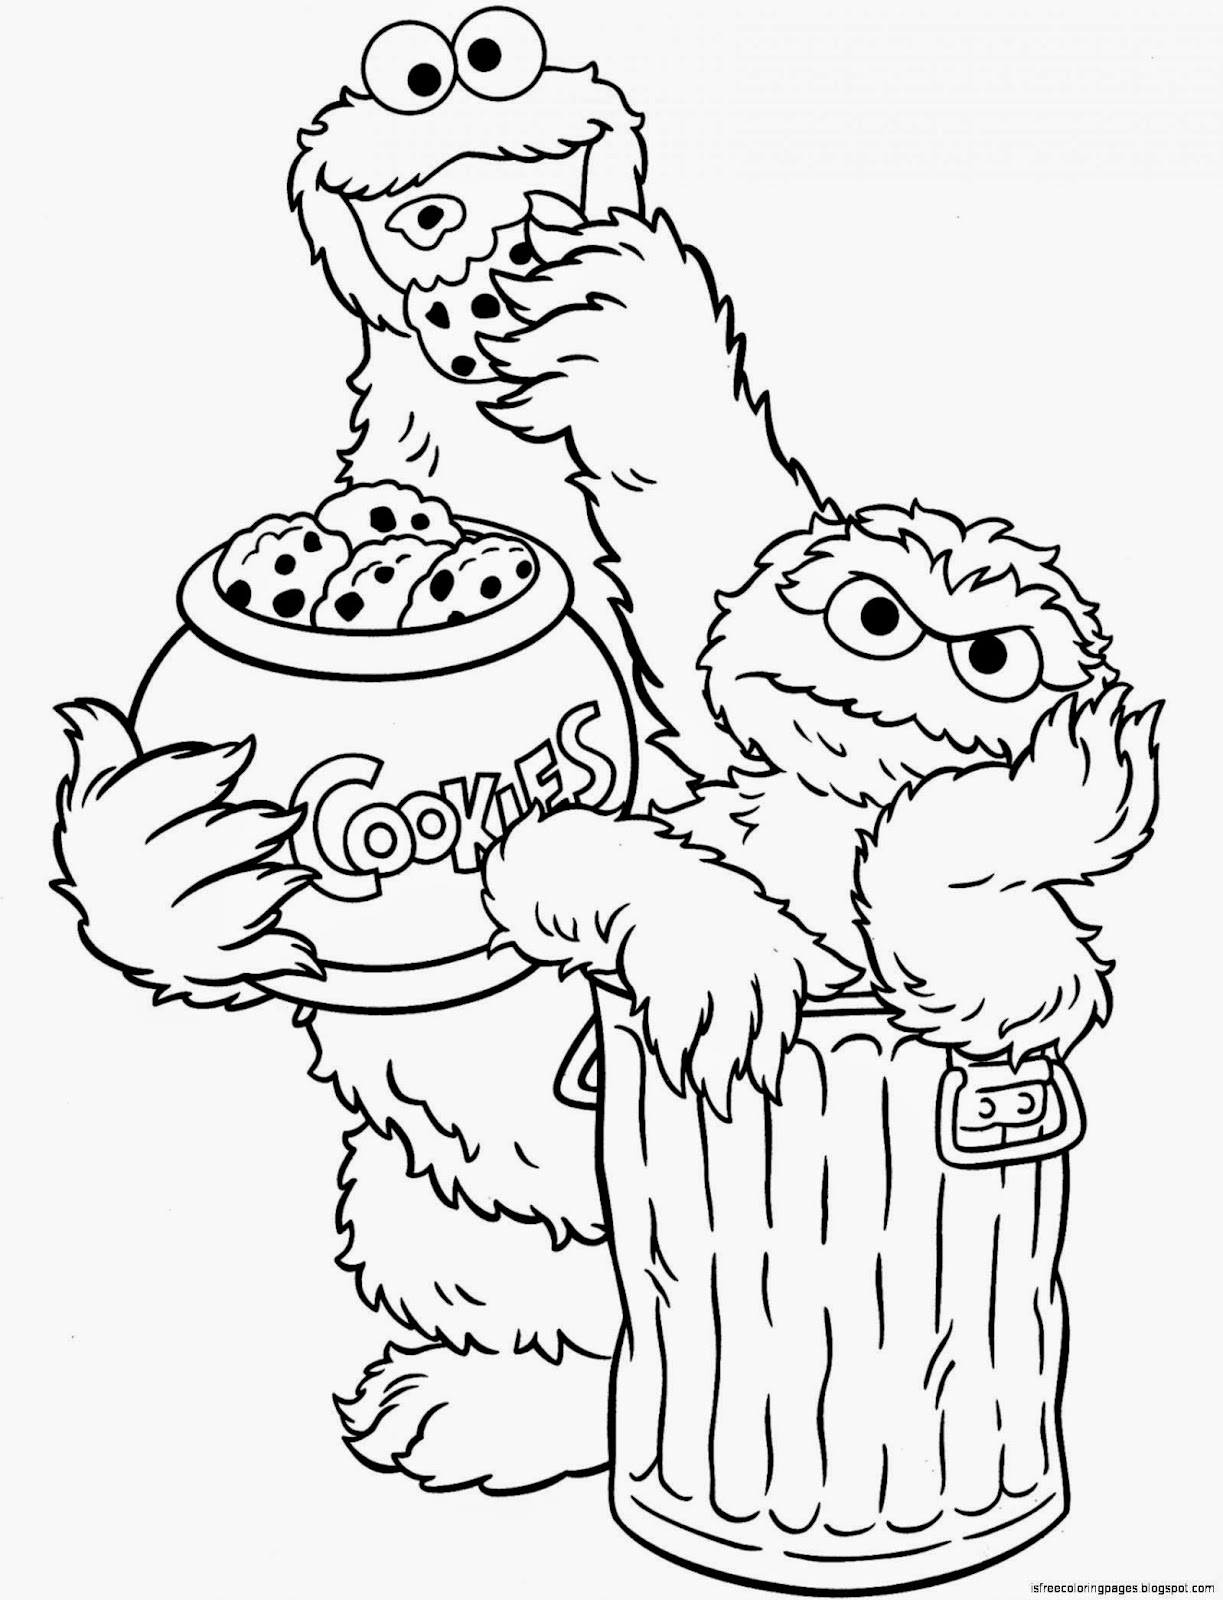 Sesame street coloring pages free coloring pages for Elmo and cookie monster coloring pages to print